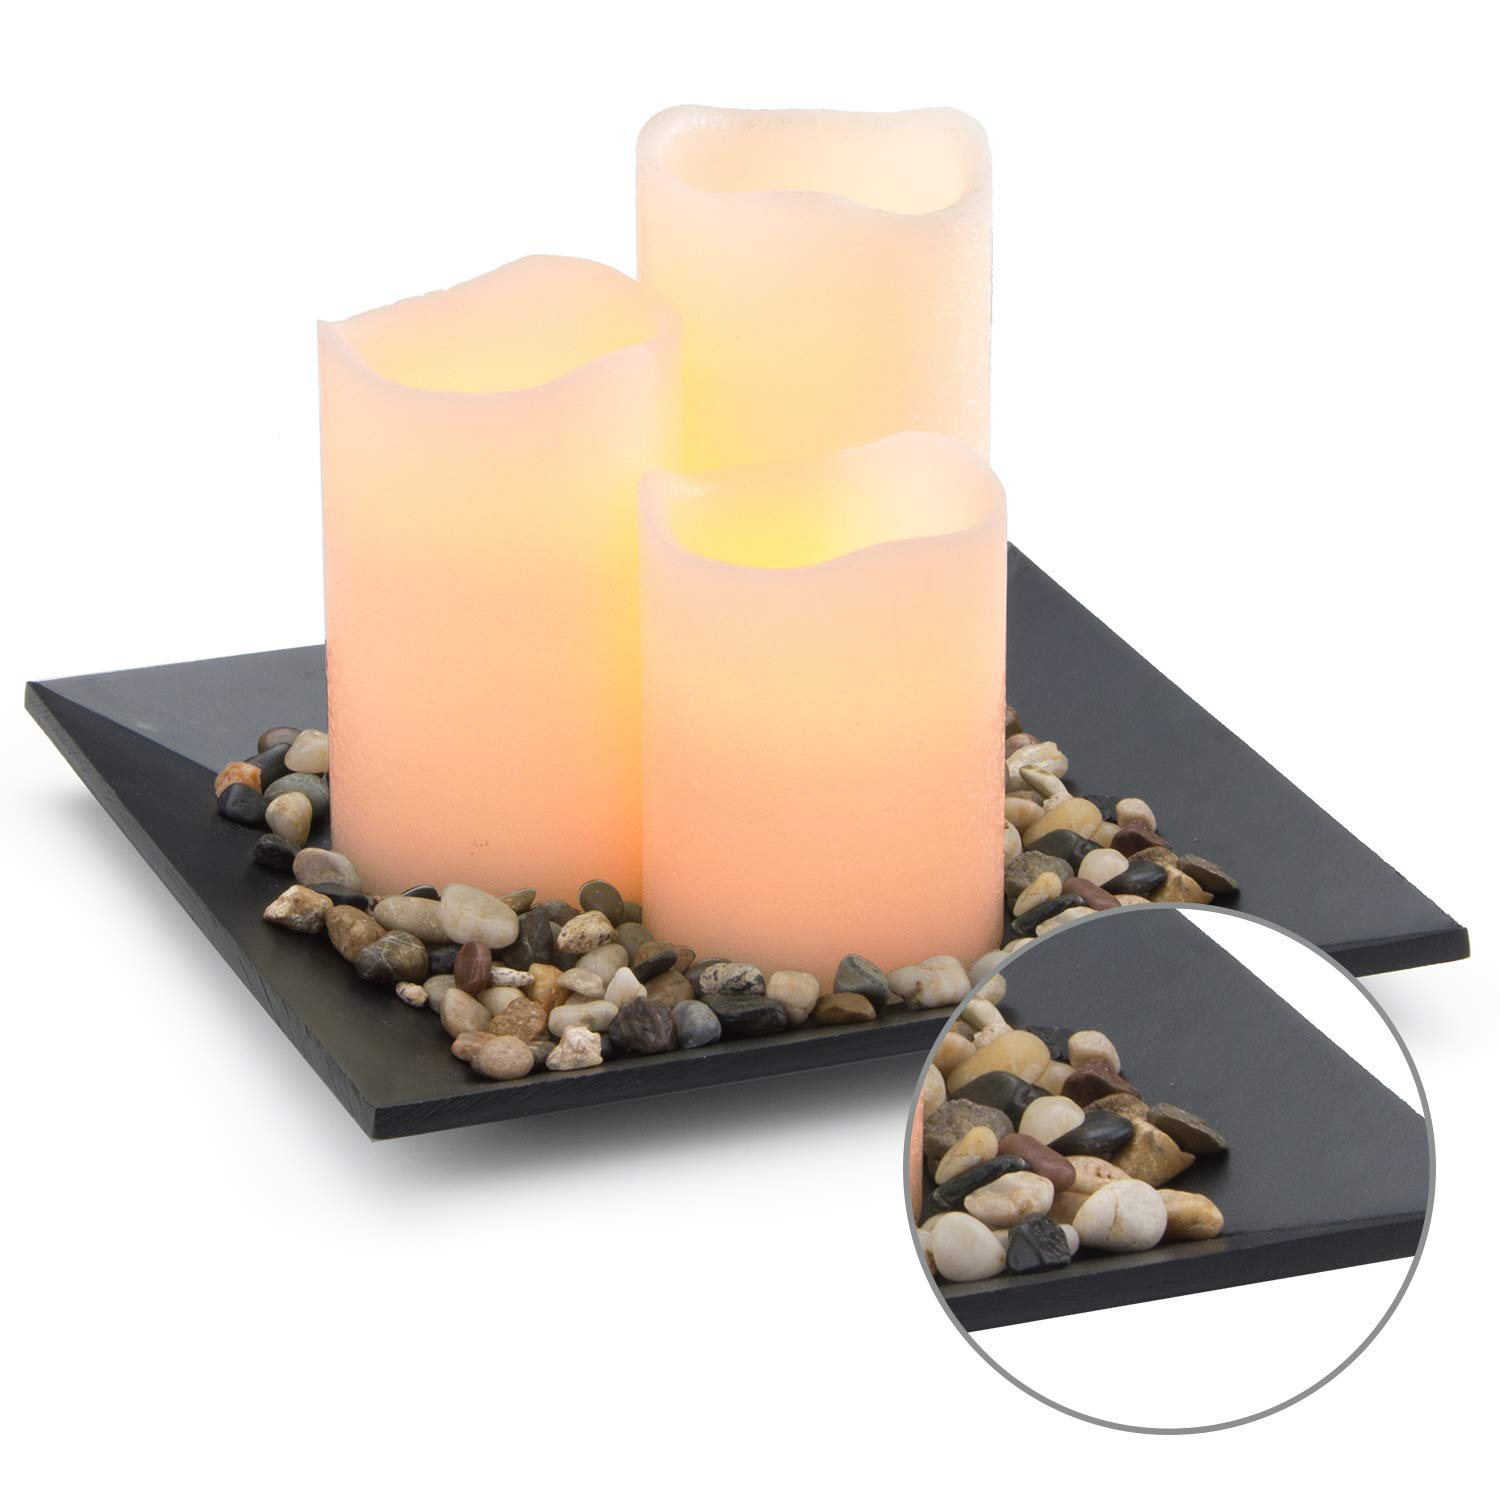 Flameless Candles Set Classic Ivory Real Wax Pillar Battery Operated Candles LED Candle Tray Home Decoration Safe Flickering Dancing Flameless Candles(H4'' 5'' 6''),Sets of 3 with Tray & Rocks Pebble